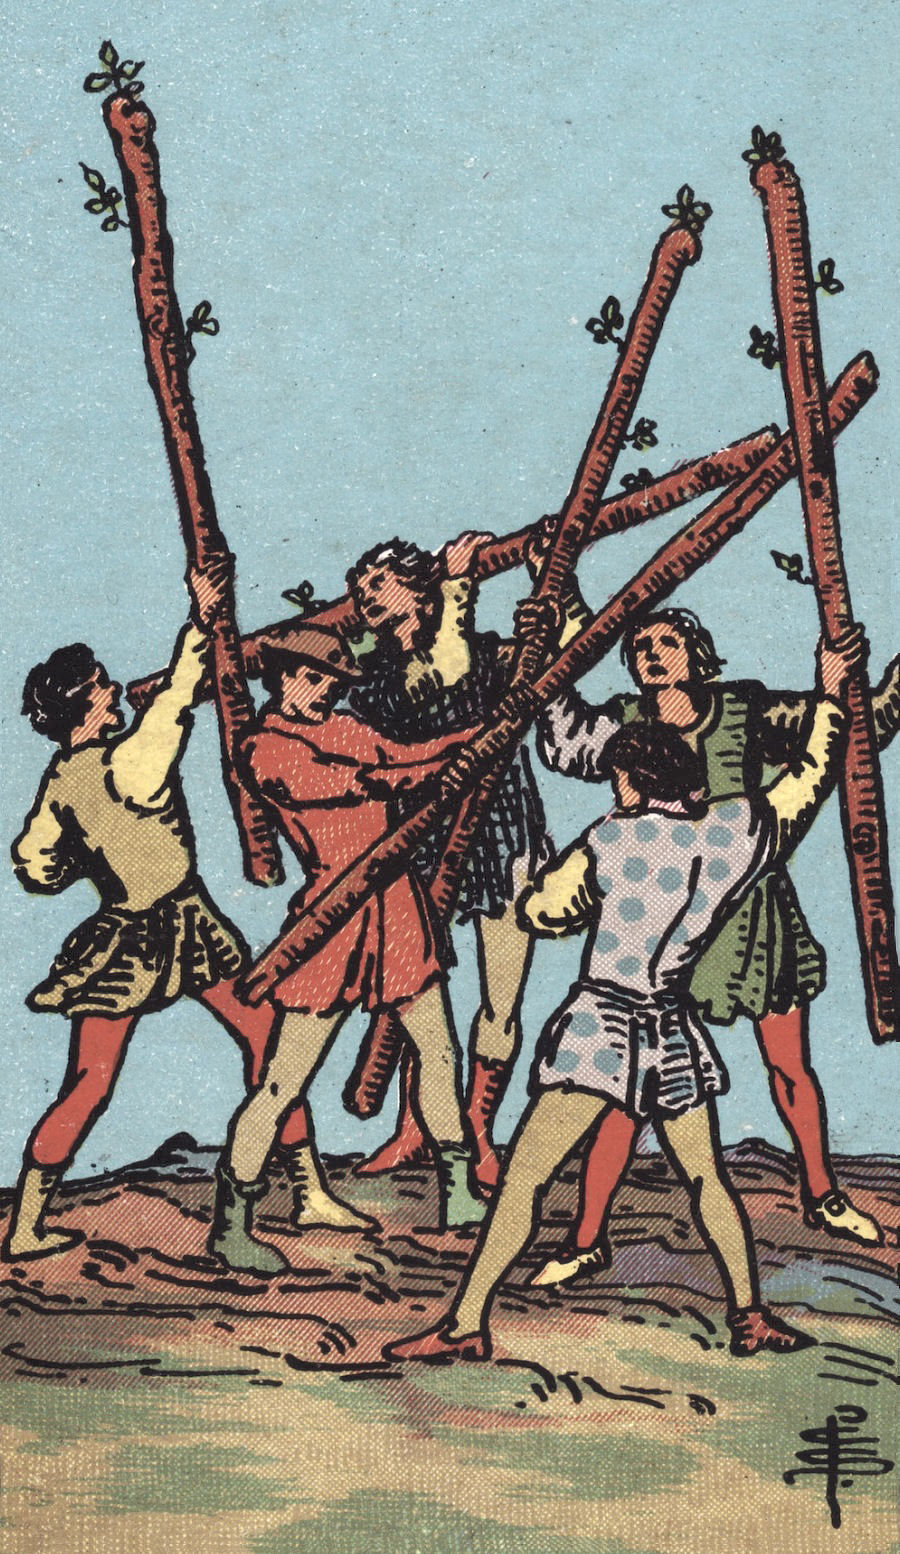 Rider Waite Smith Five of Wands Tarot Card Meaning